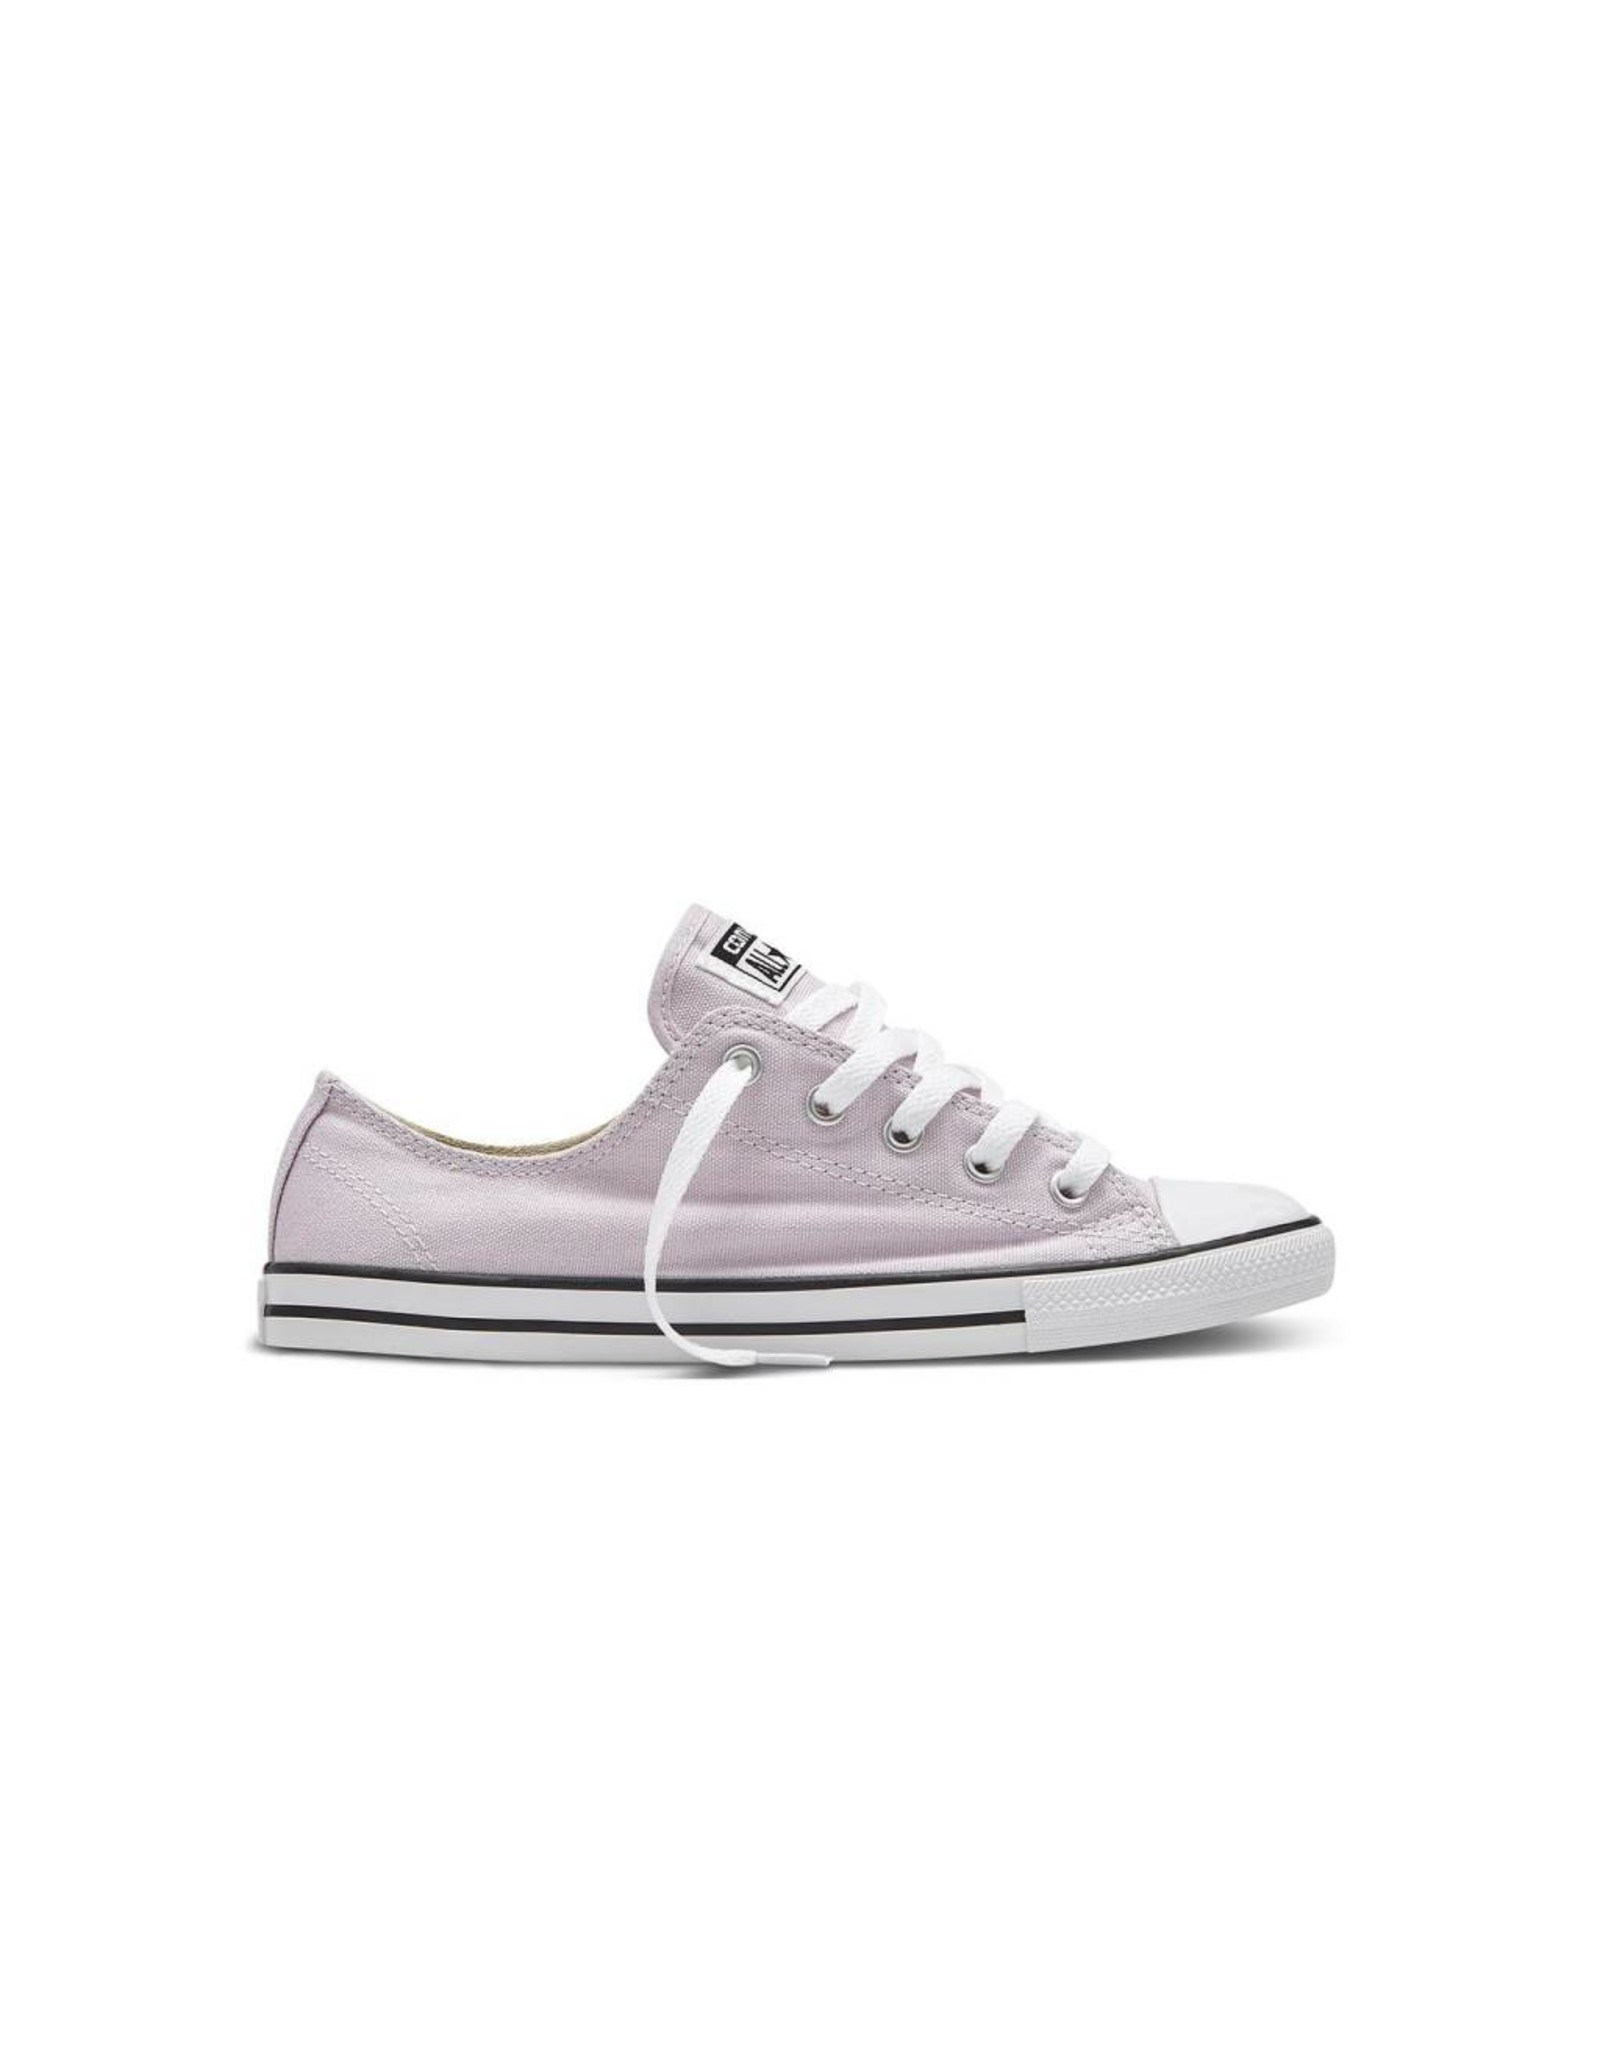 CONVERSE Chuck Taylor All Star  DAINTY OX PURPLE DUSK C640DPU-551512C